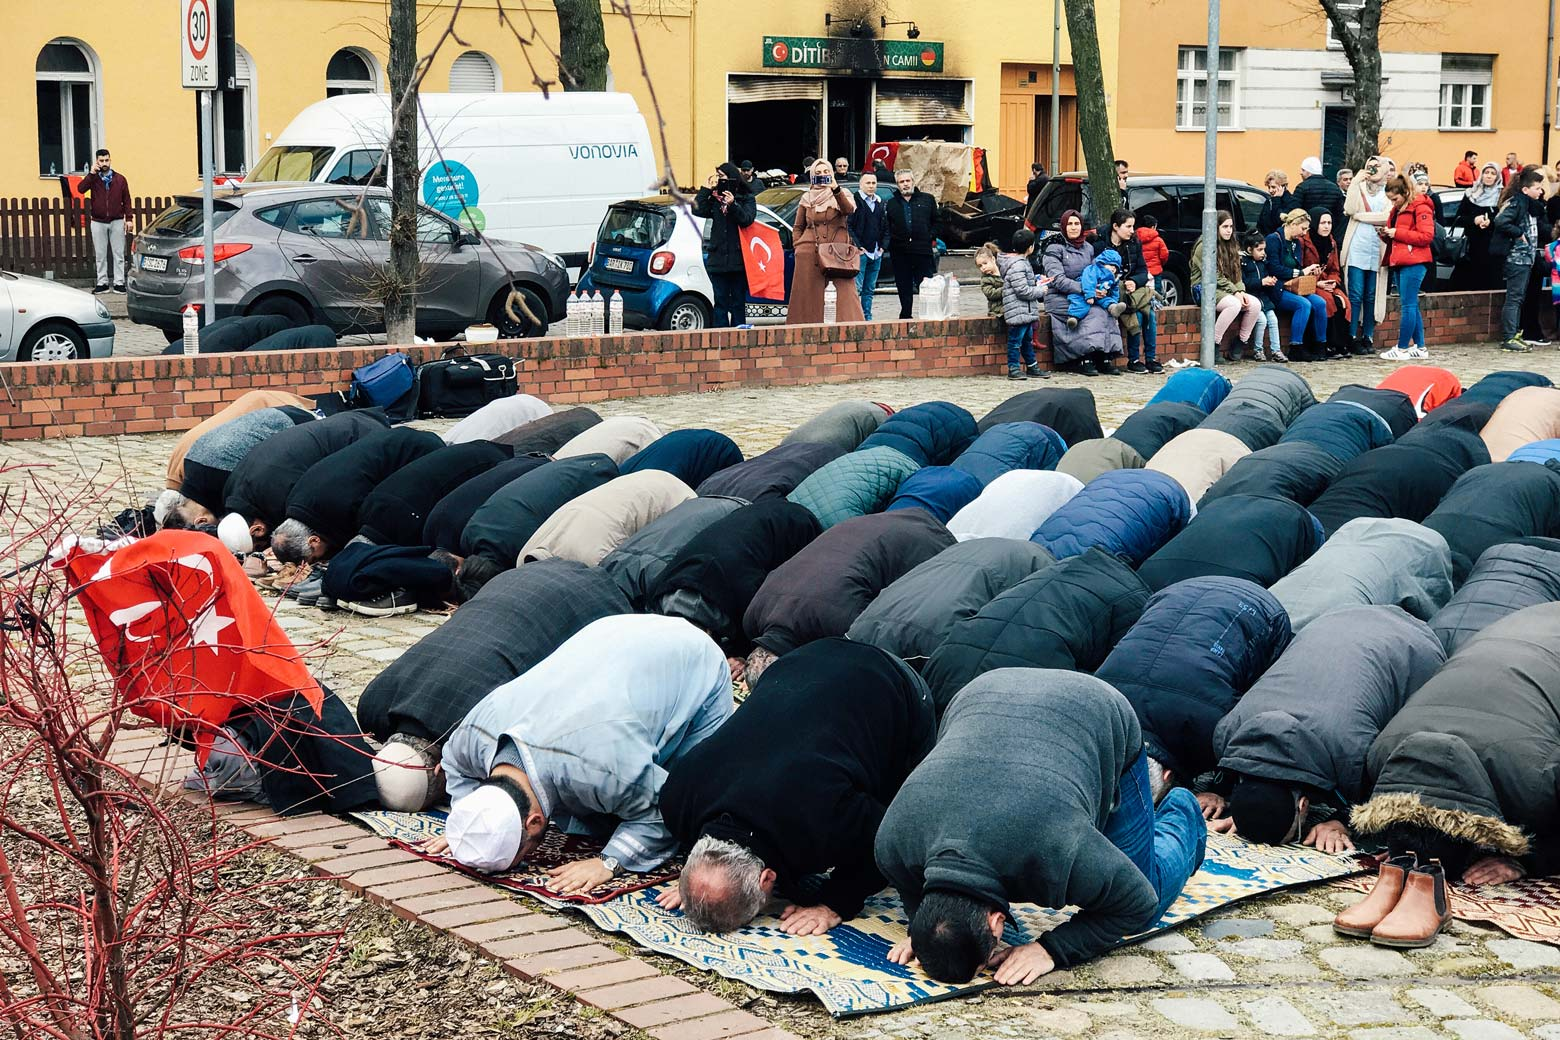 People pray near a mosque after it was destroyed by a fire in Berlin on March 11.